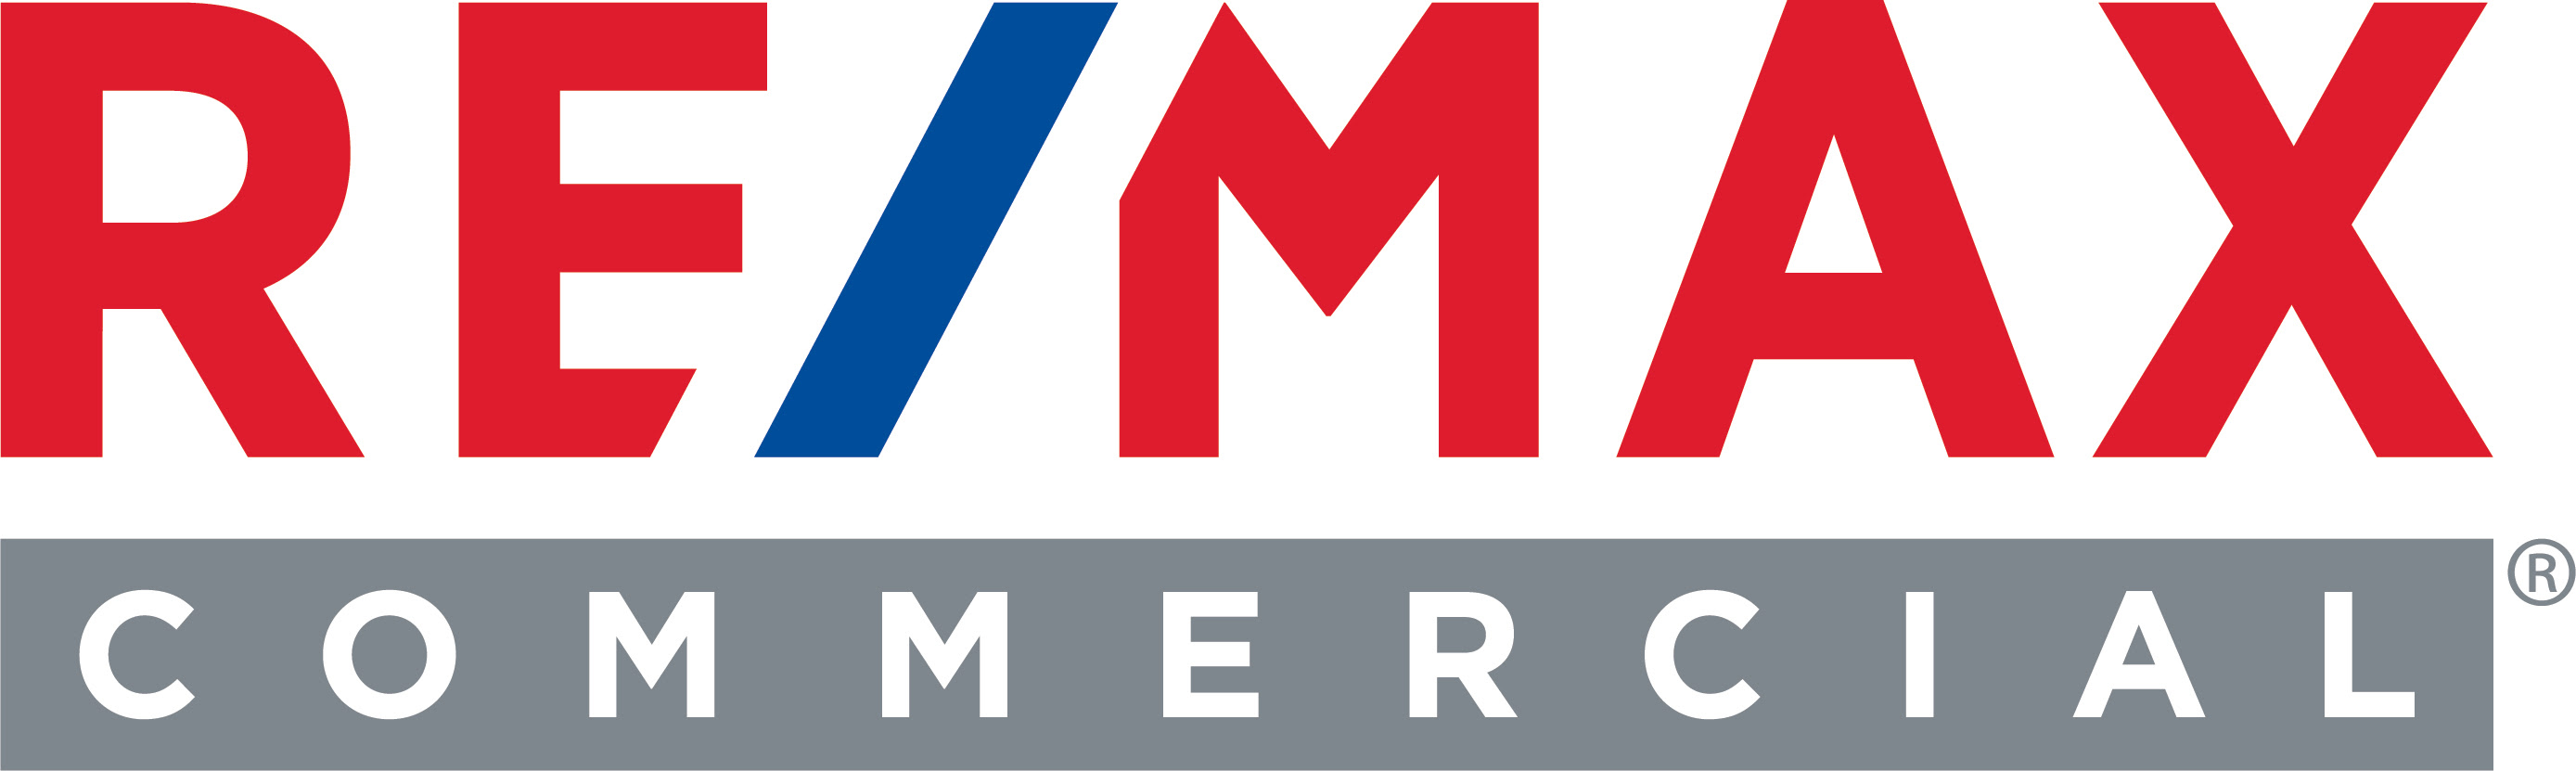 RE/MAX Preferred - Commercial Division